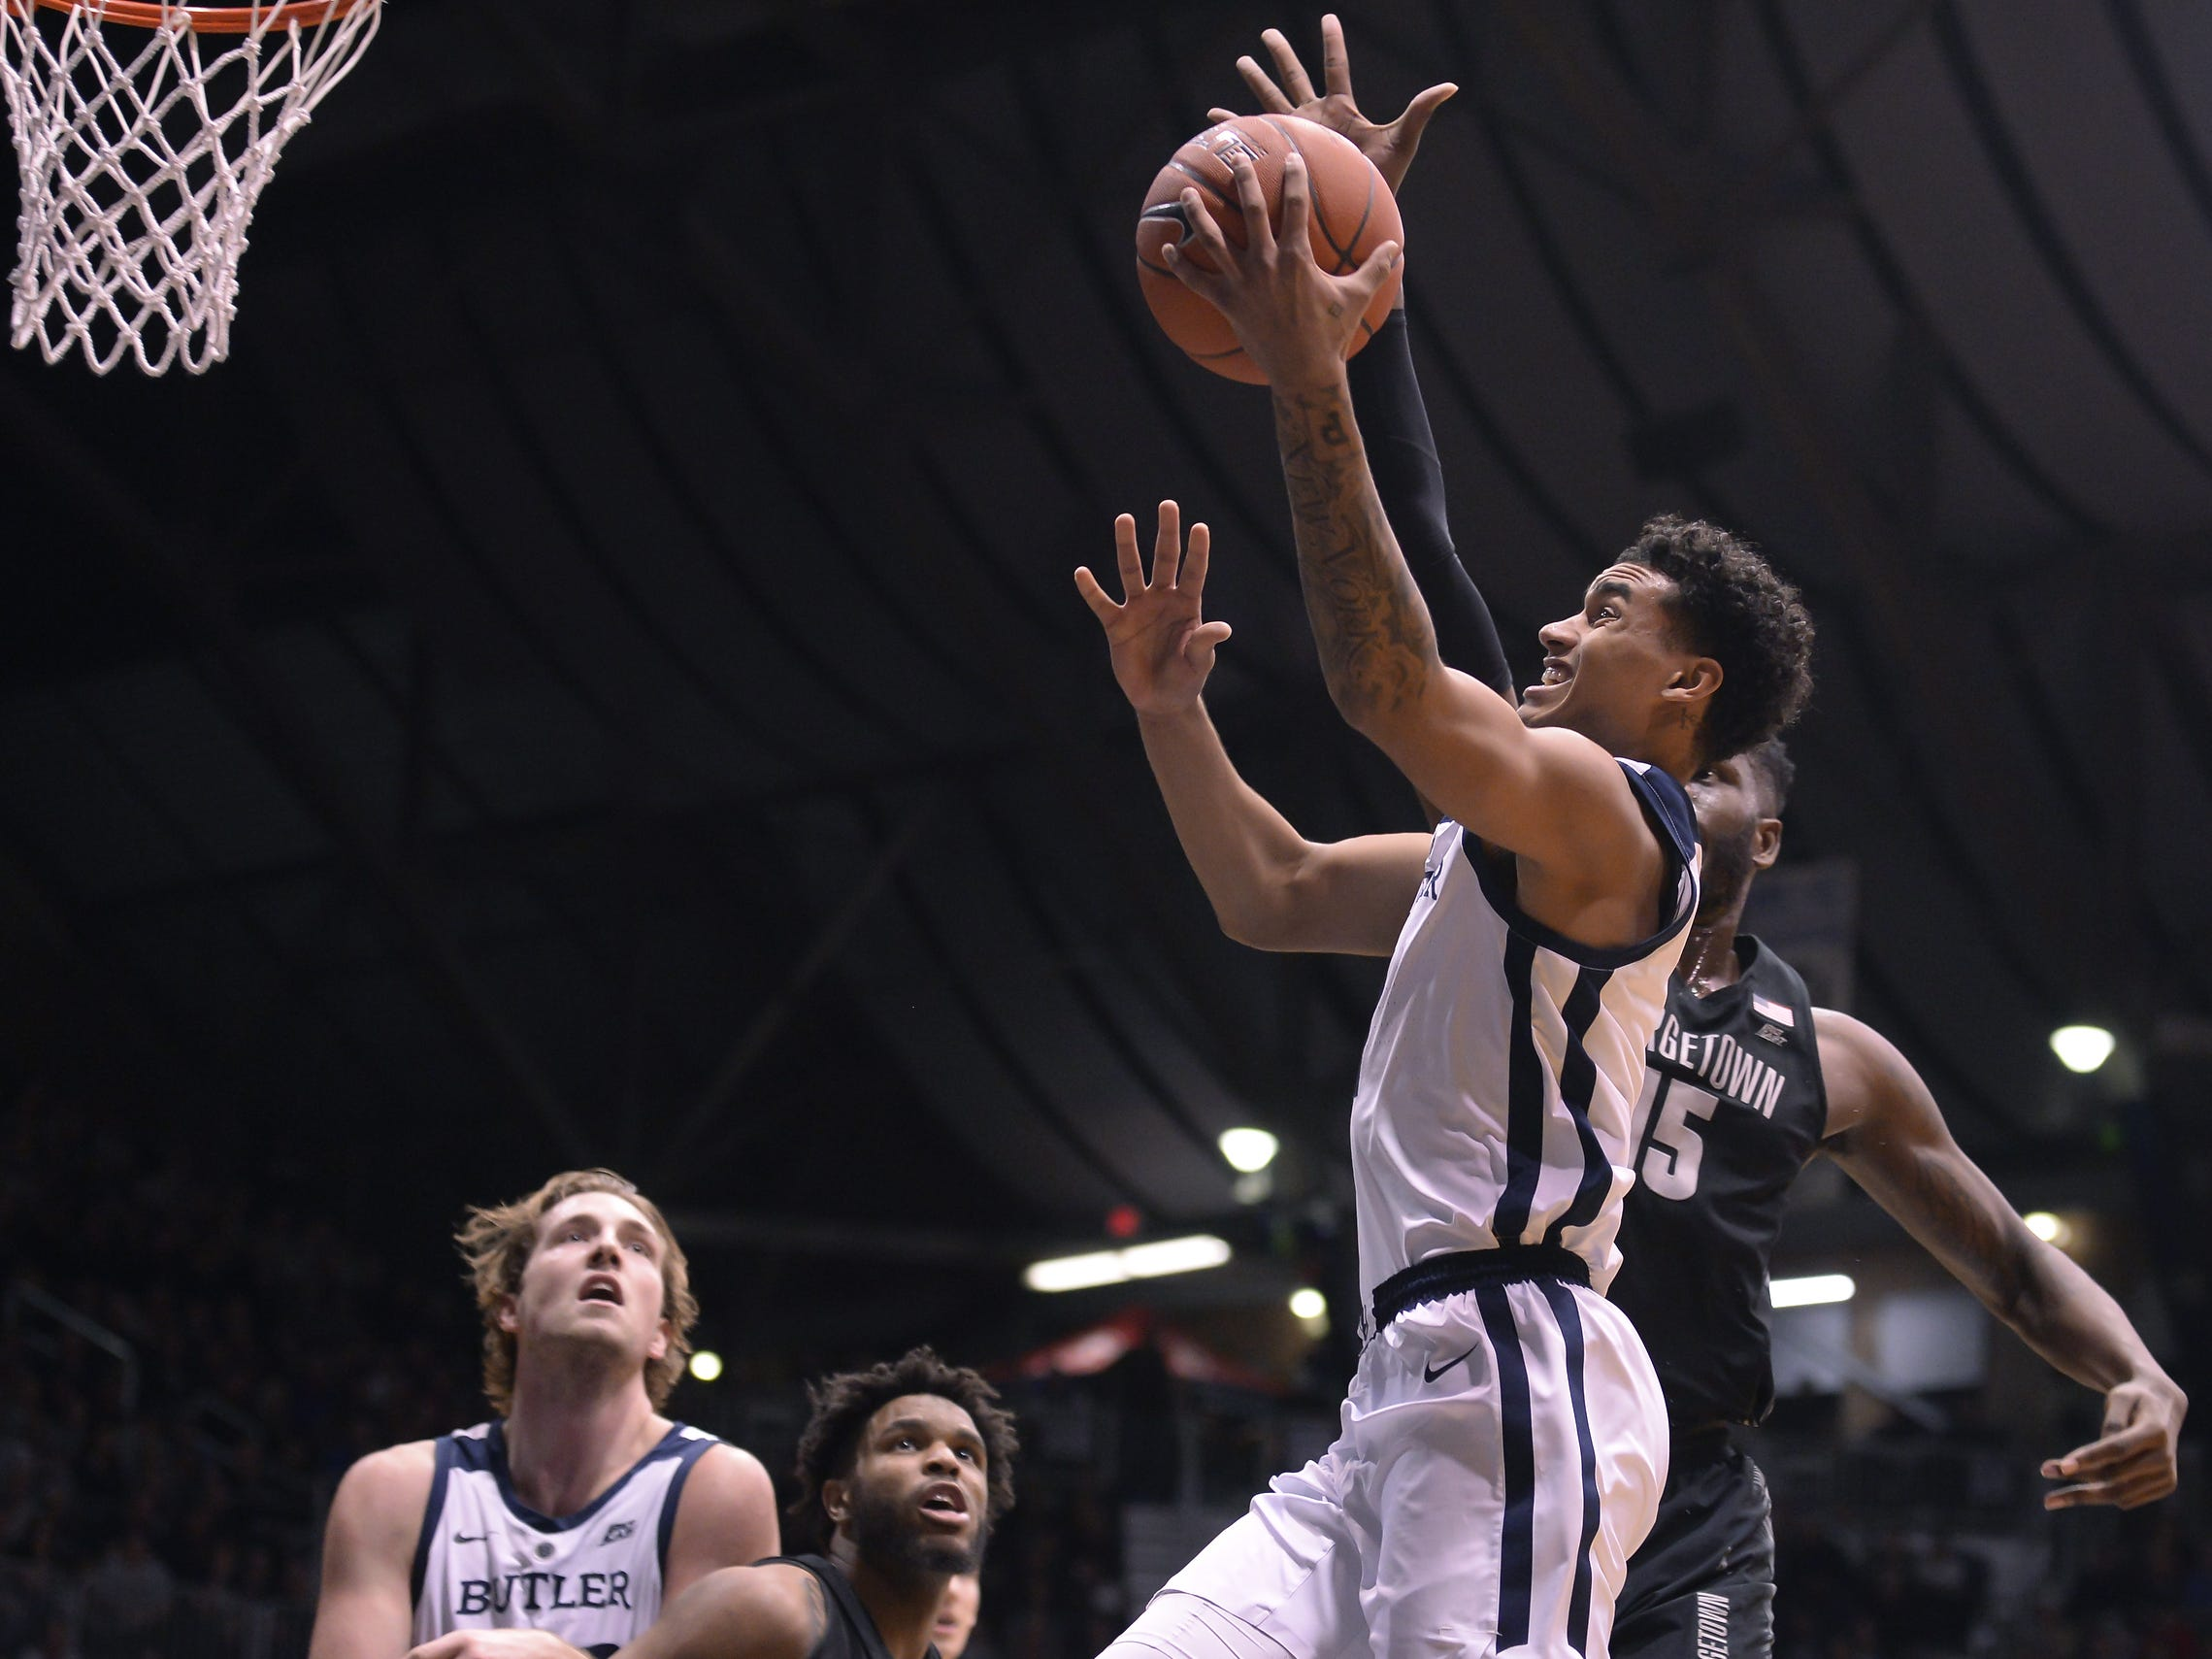 during the first half of game action between Butler University and Georgetown University, at Hinkle Fieldhouse in Indianapolis, Indiana on Wednesday, Jan. 2, 2019.